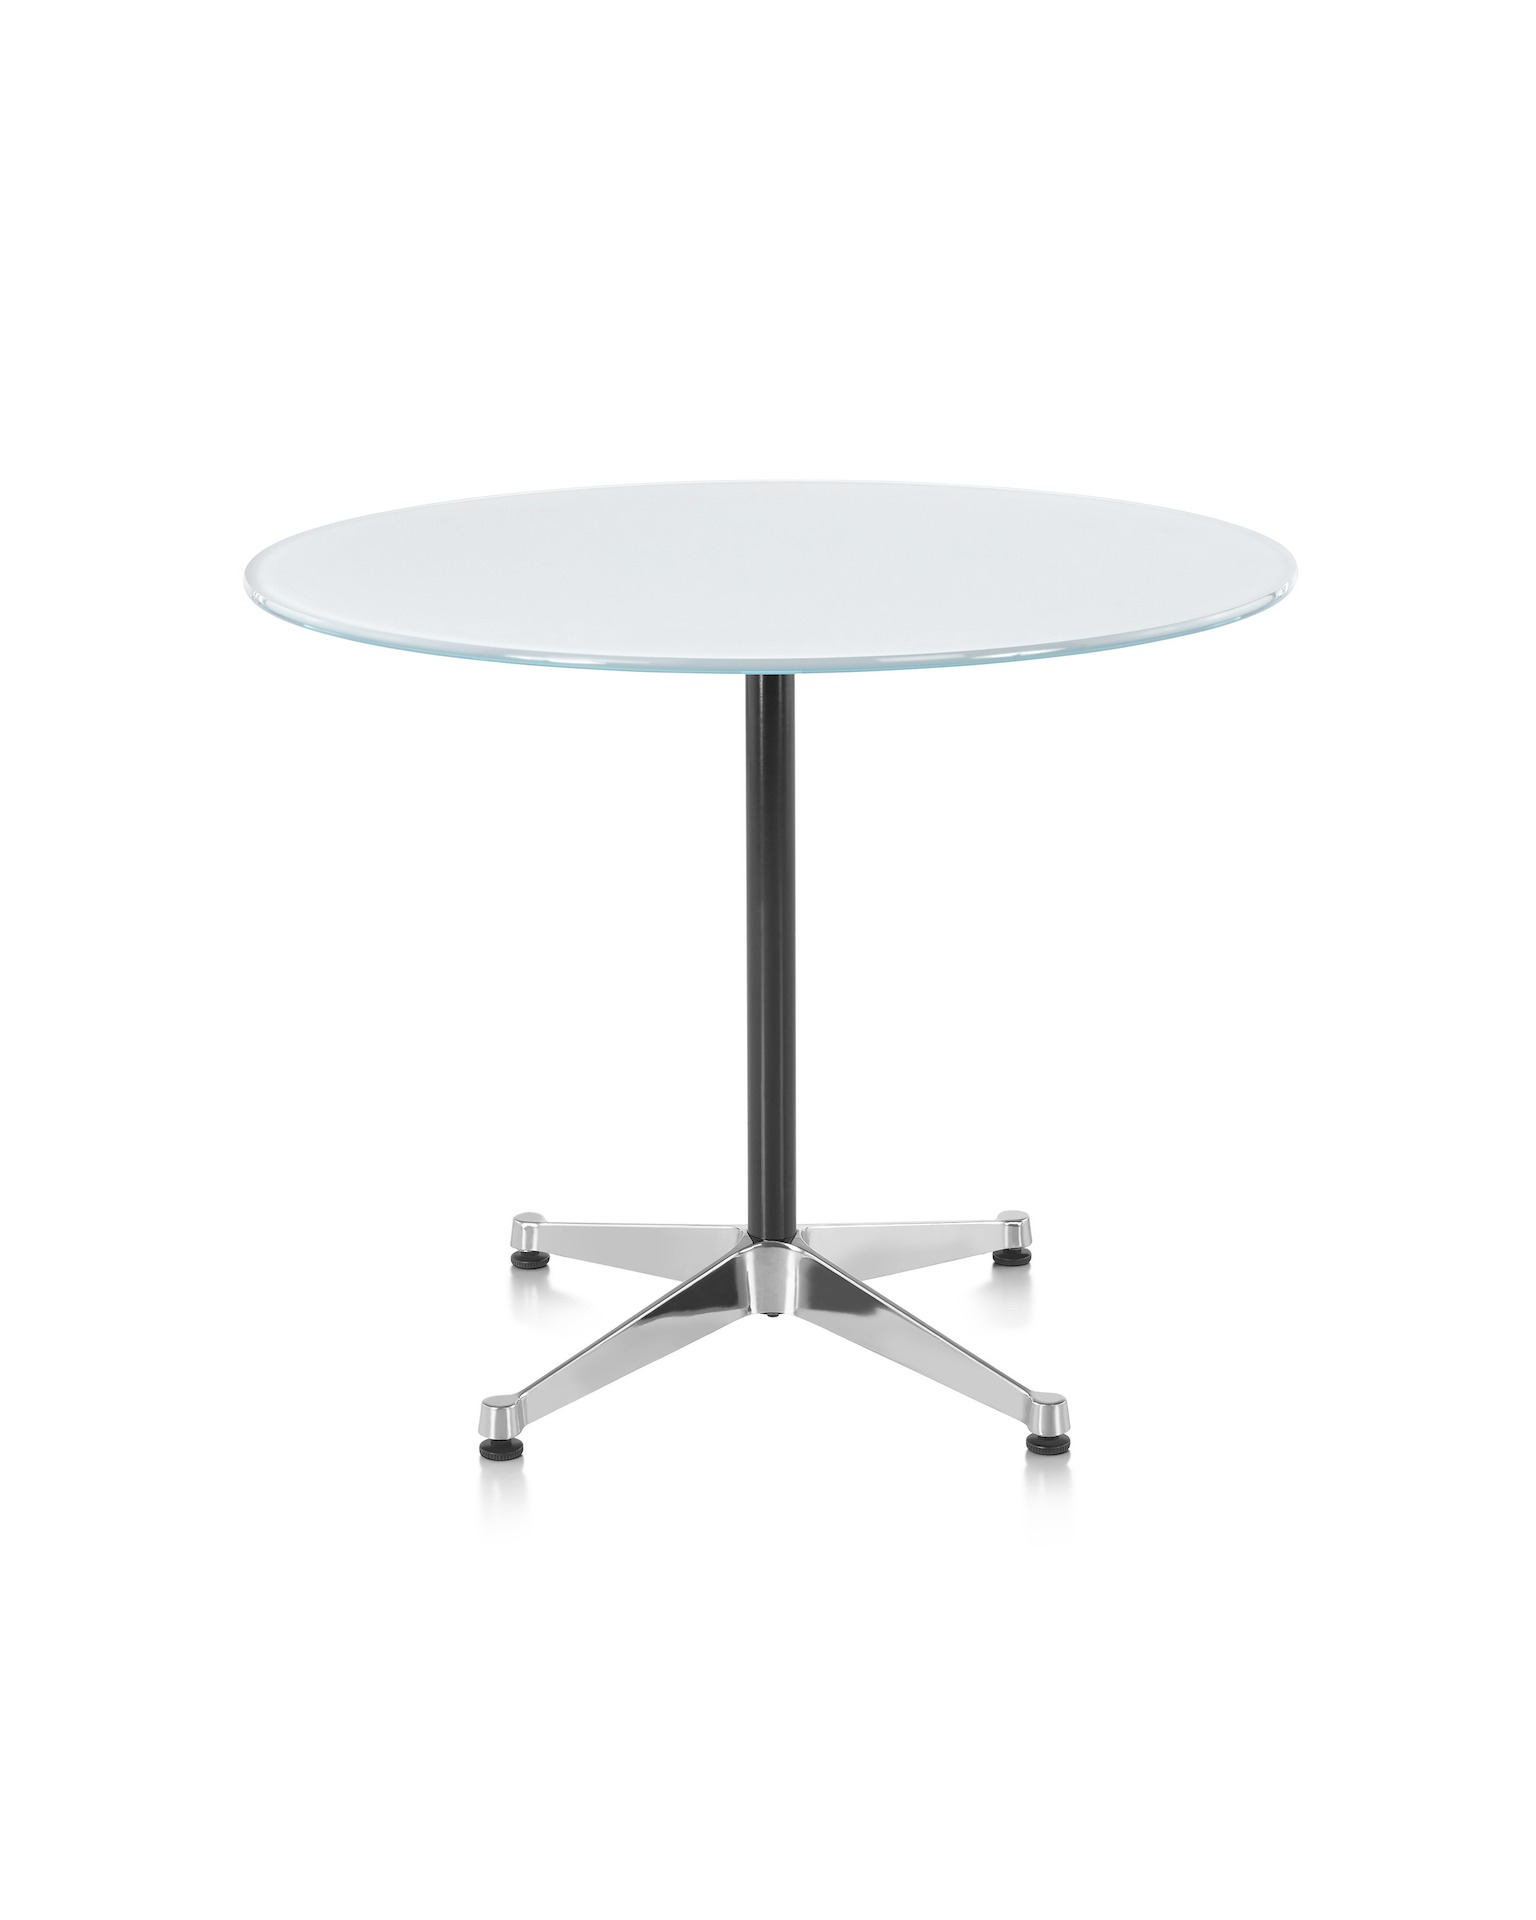 Eames Round Table Contract Base